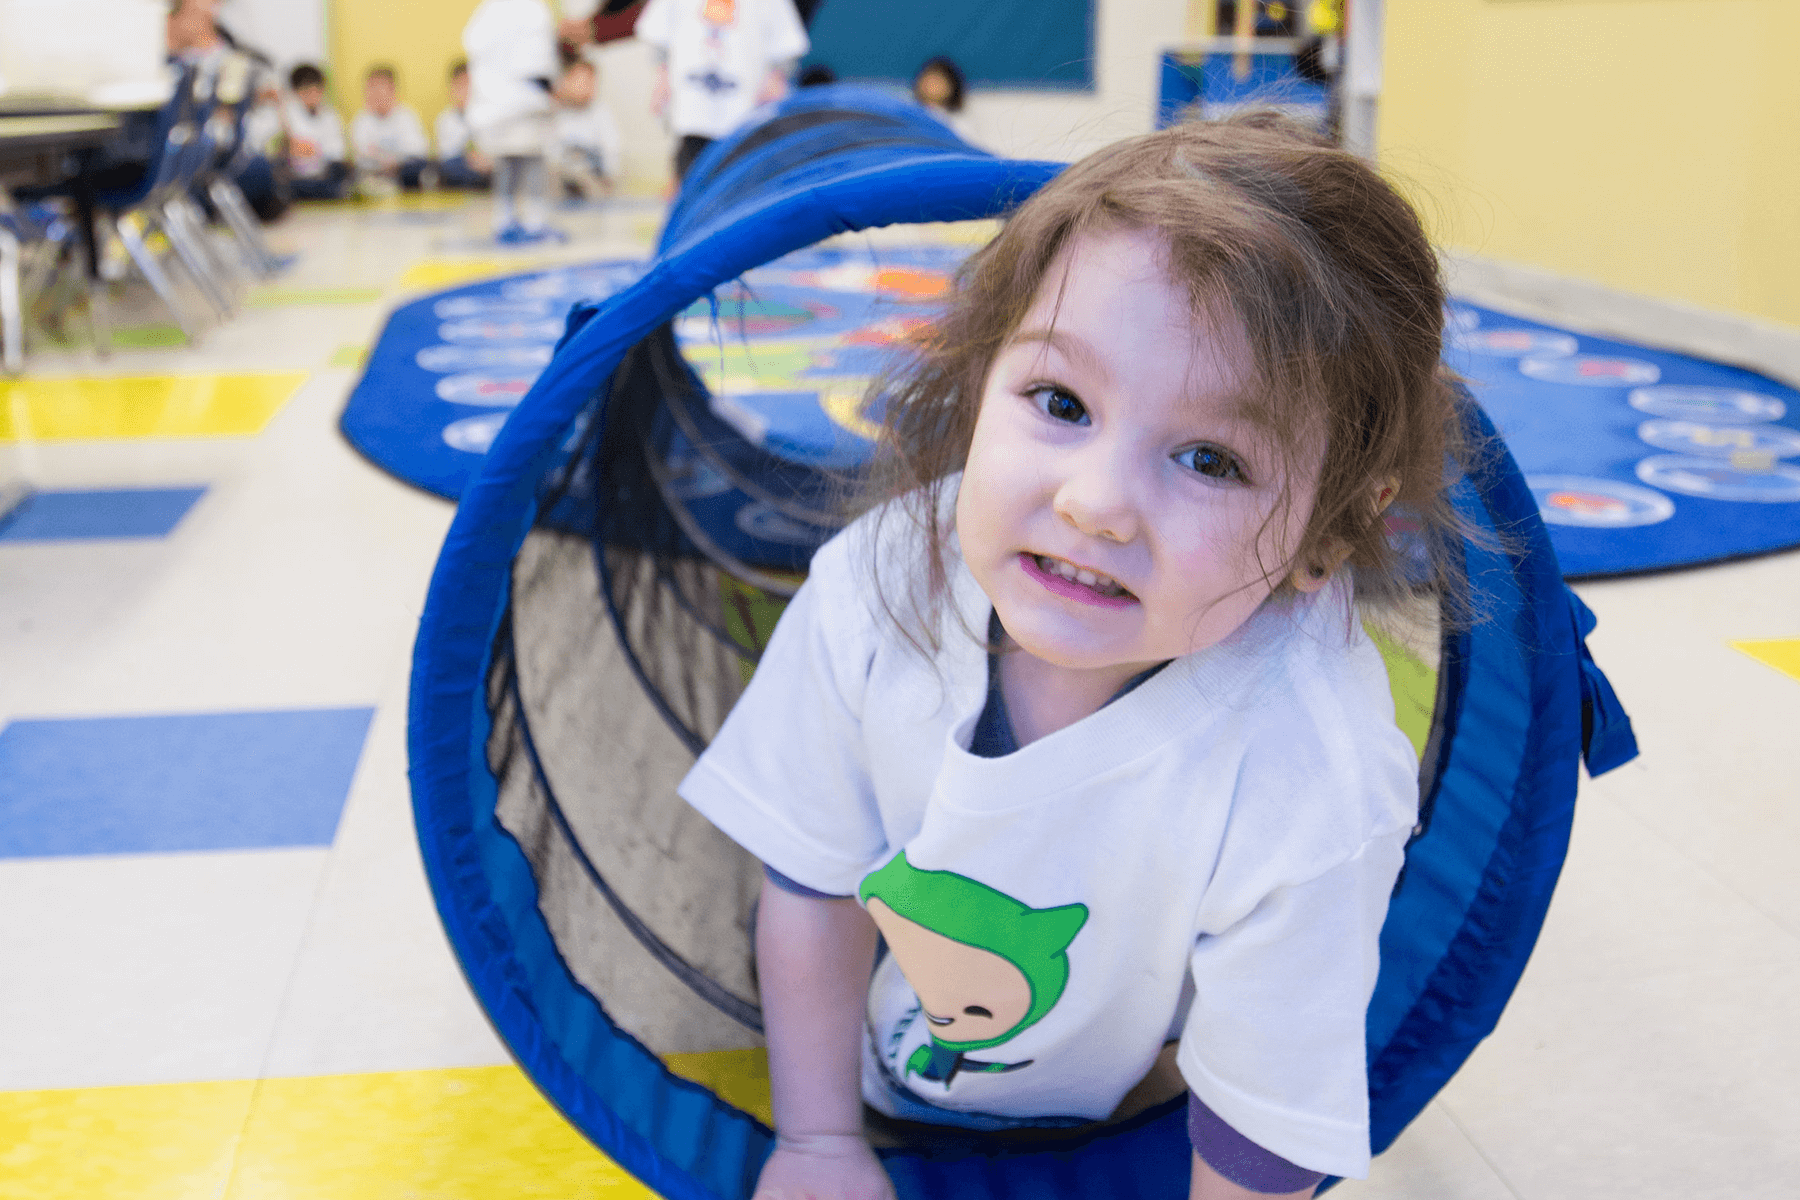 child having fun at daycare